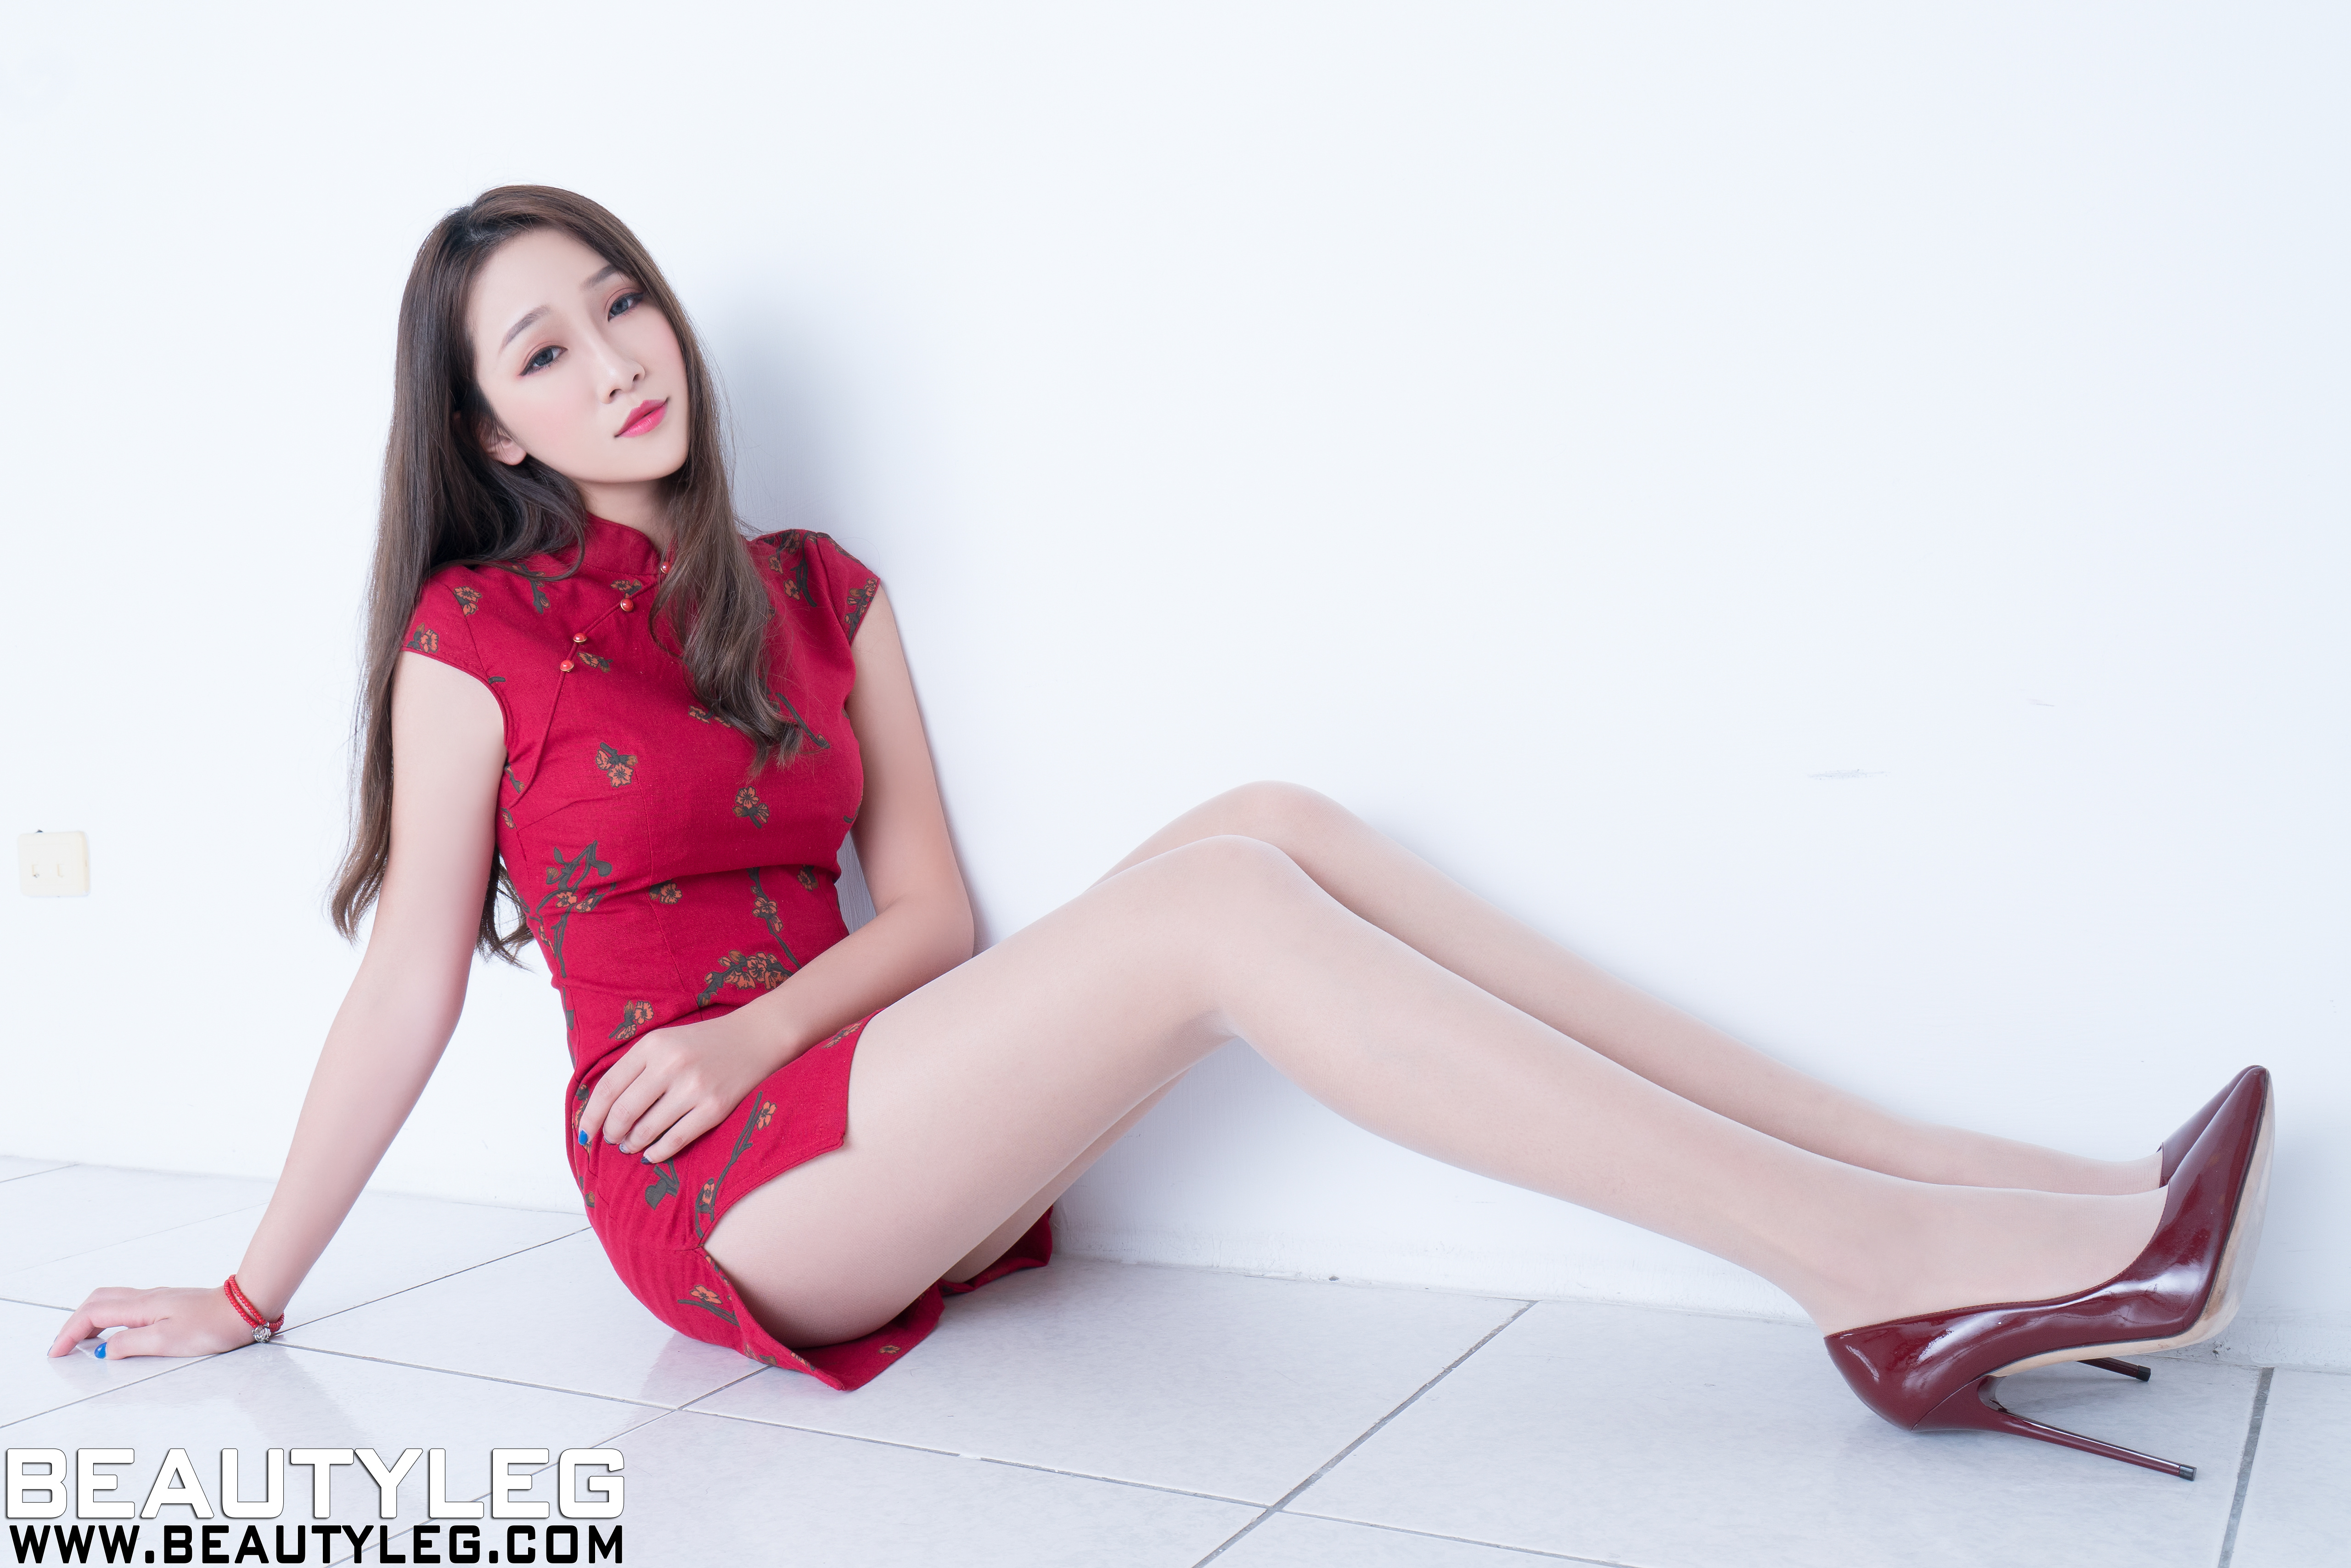 BEAUTYLEG 腿模 - Free Download 89  5